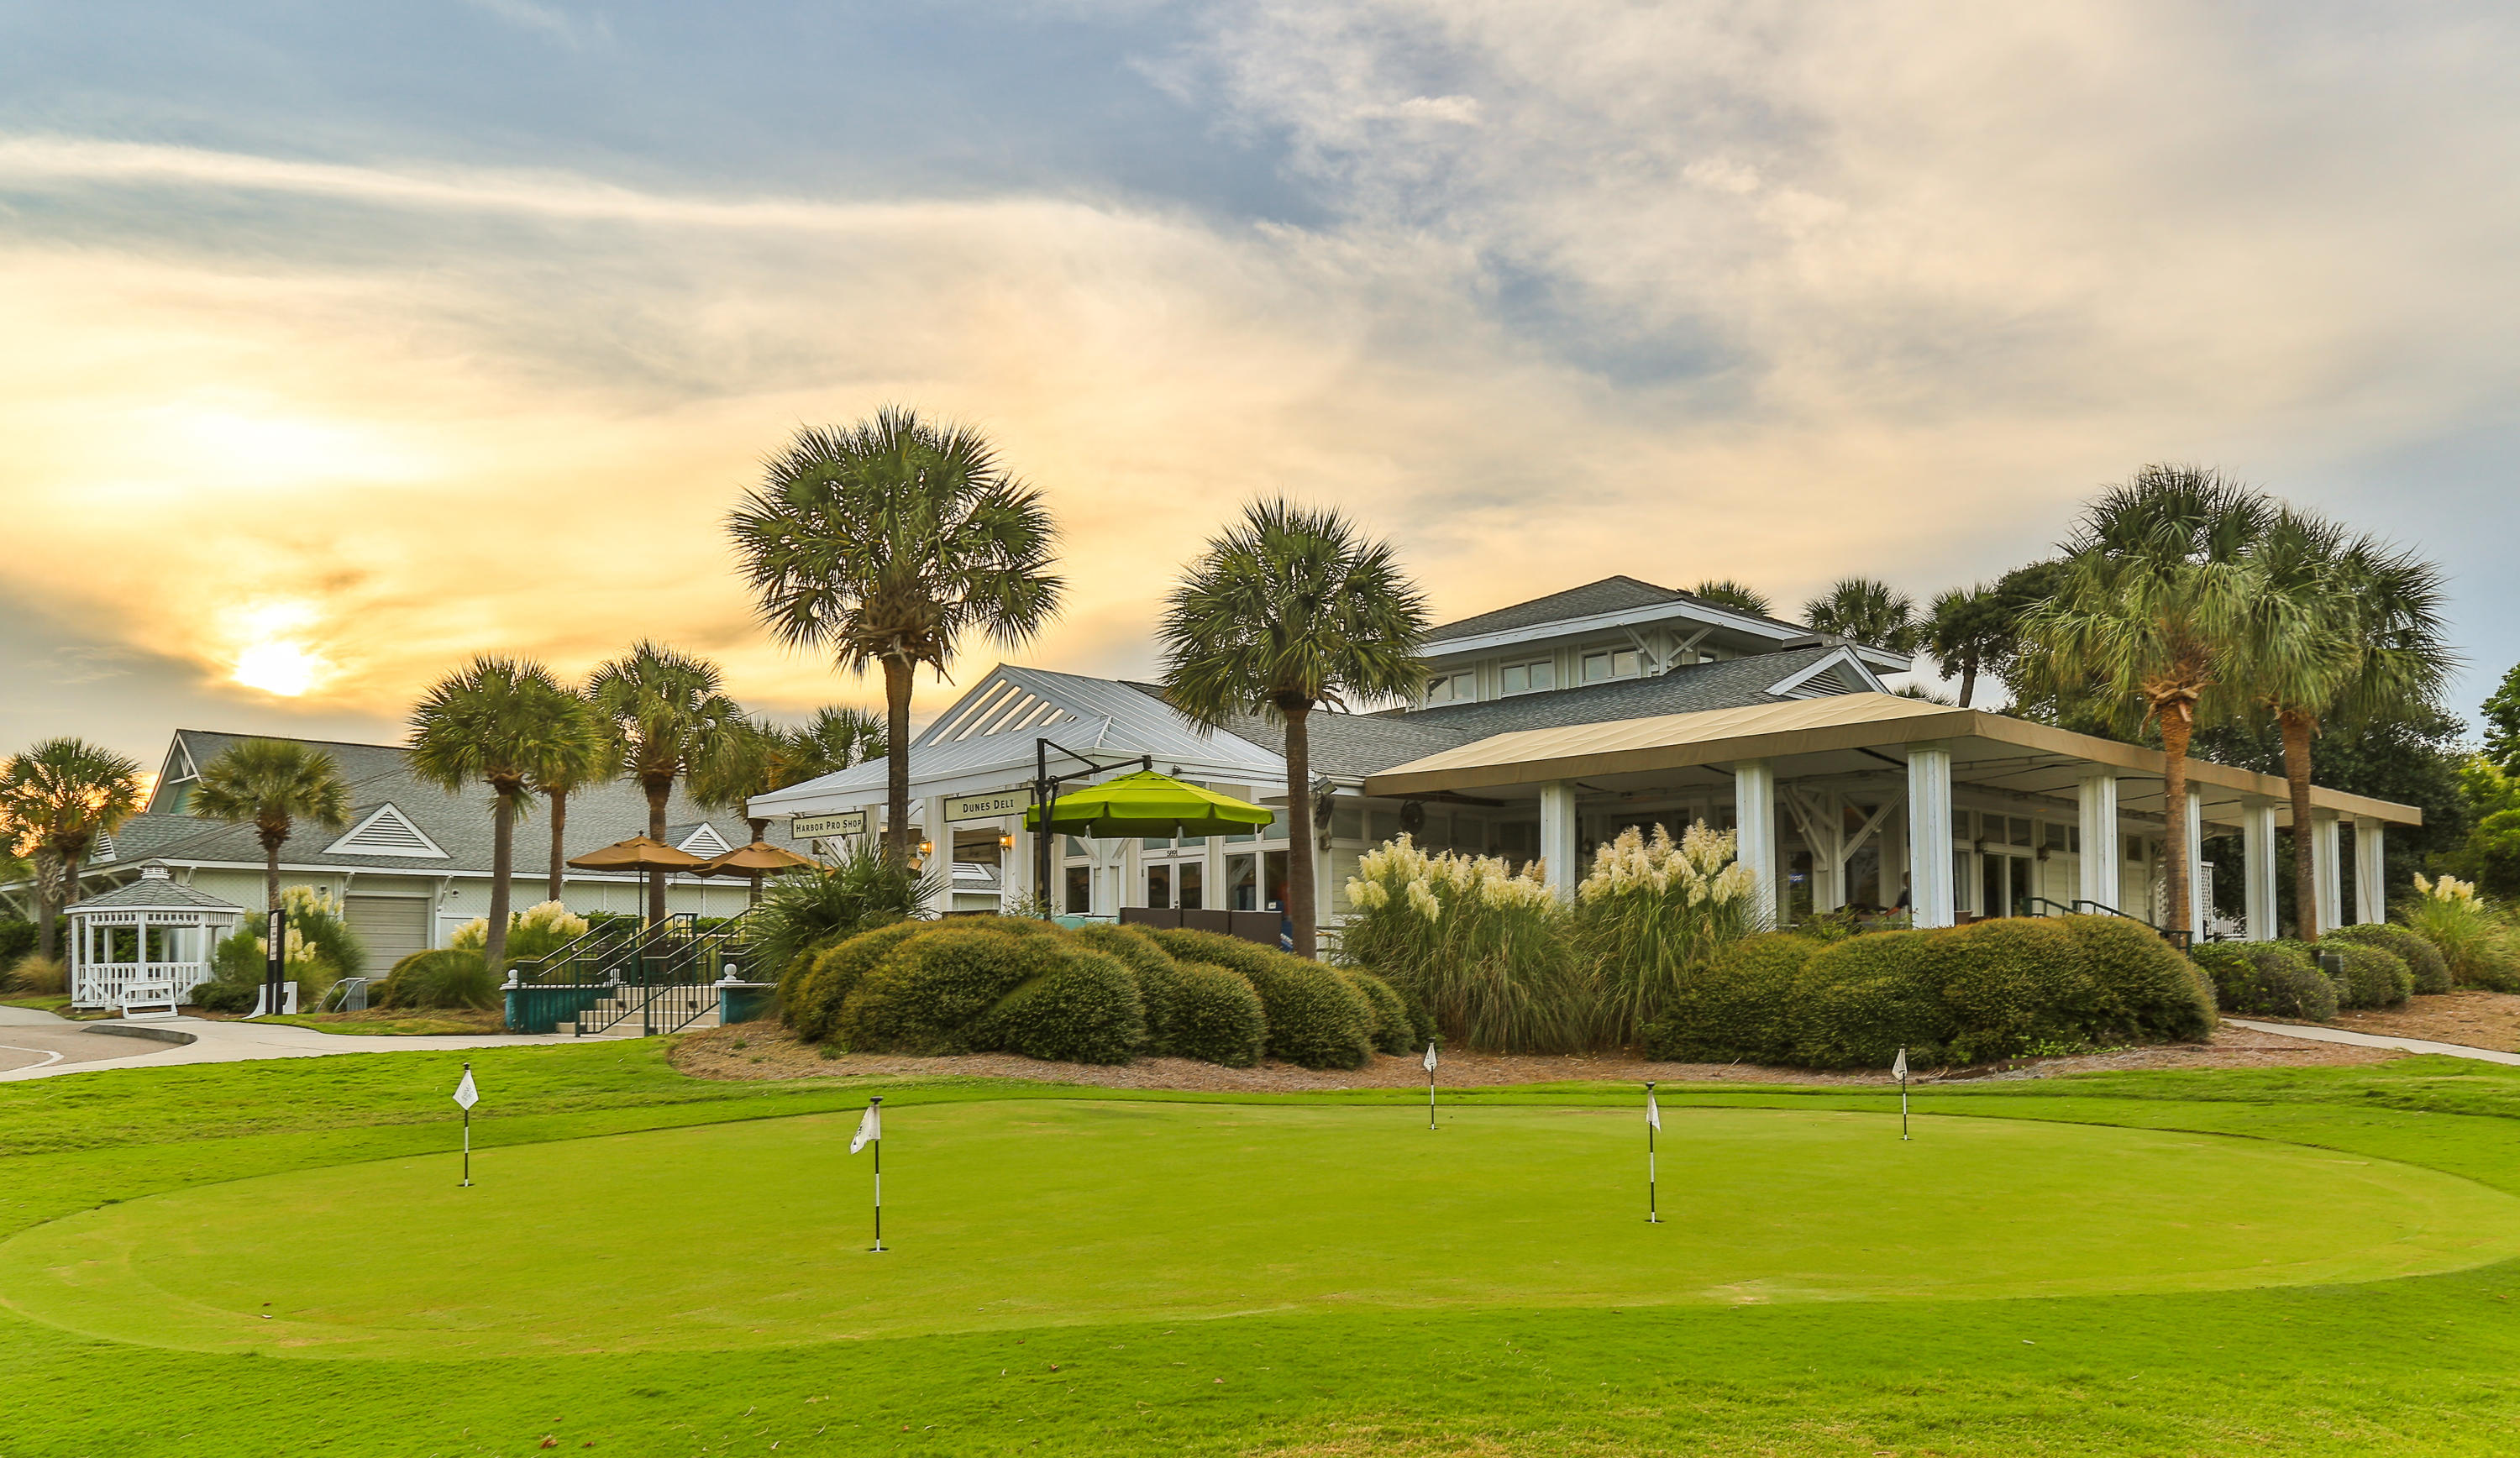 Wild Dunes Homes For Sale - 406-A Village At Wild Dunes, Isle of Palms, SC - 25